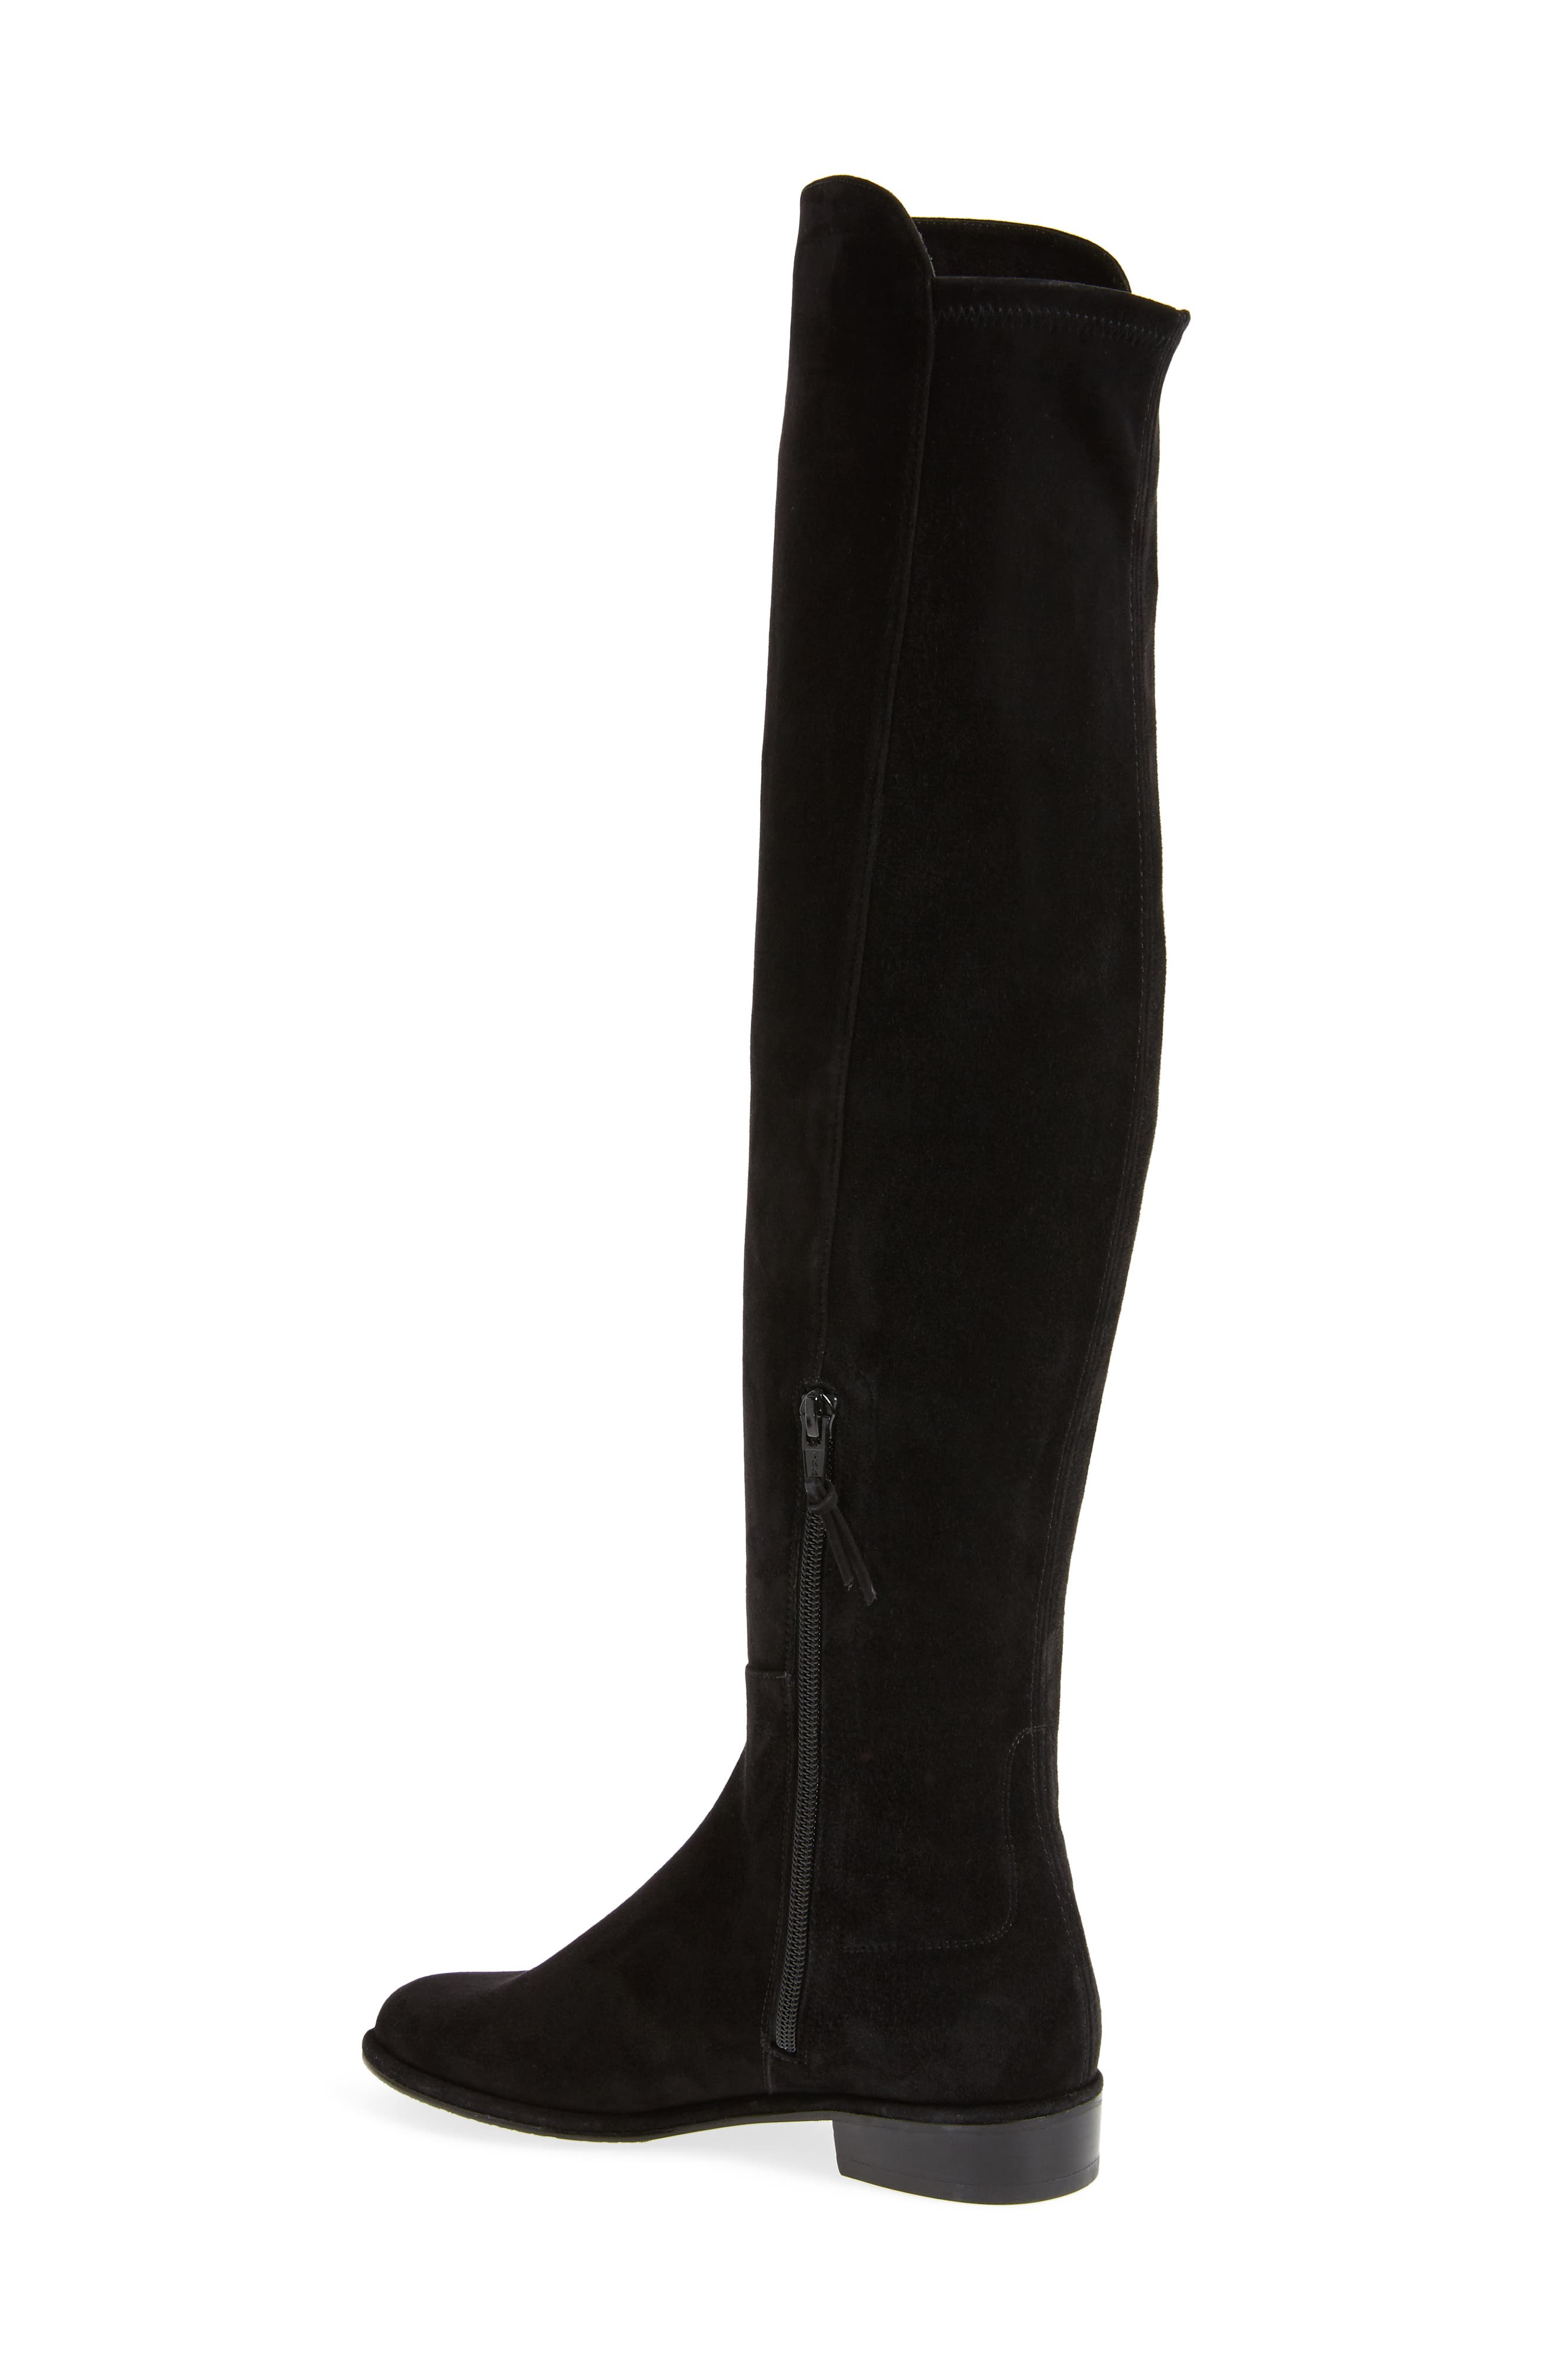 Allgood Over the Knee Boot,                             Alternate thumbnail 2, color,                             001